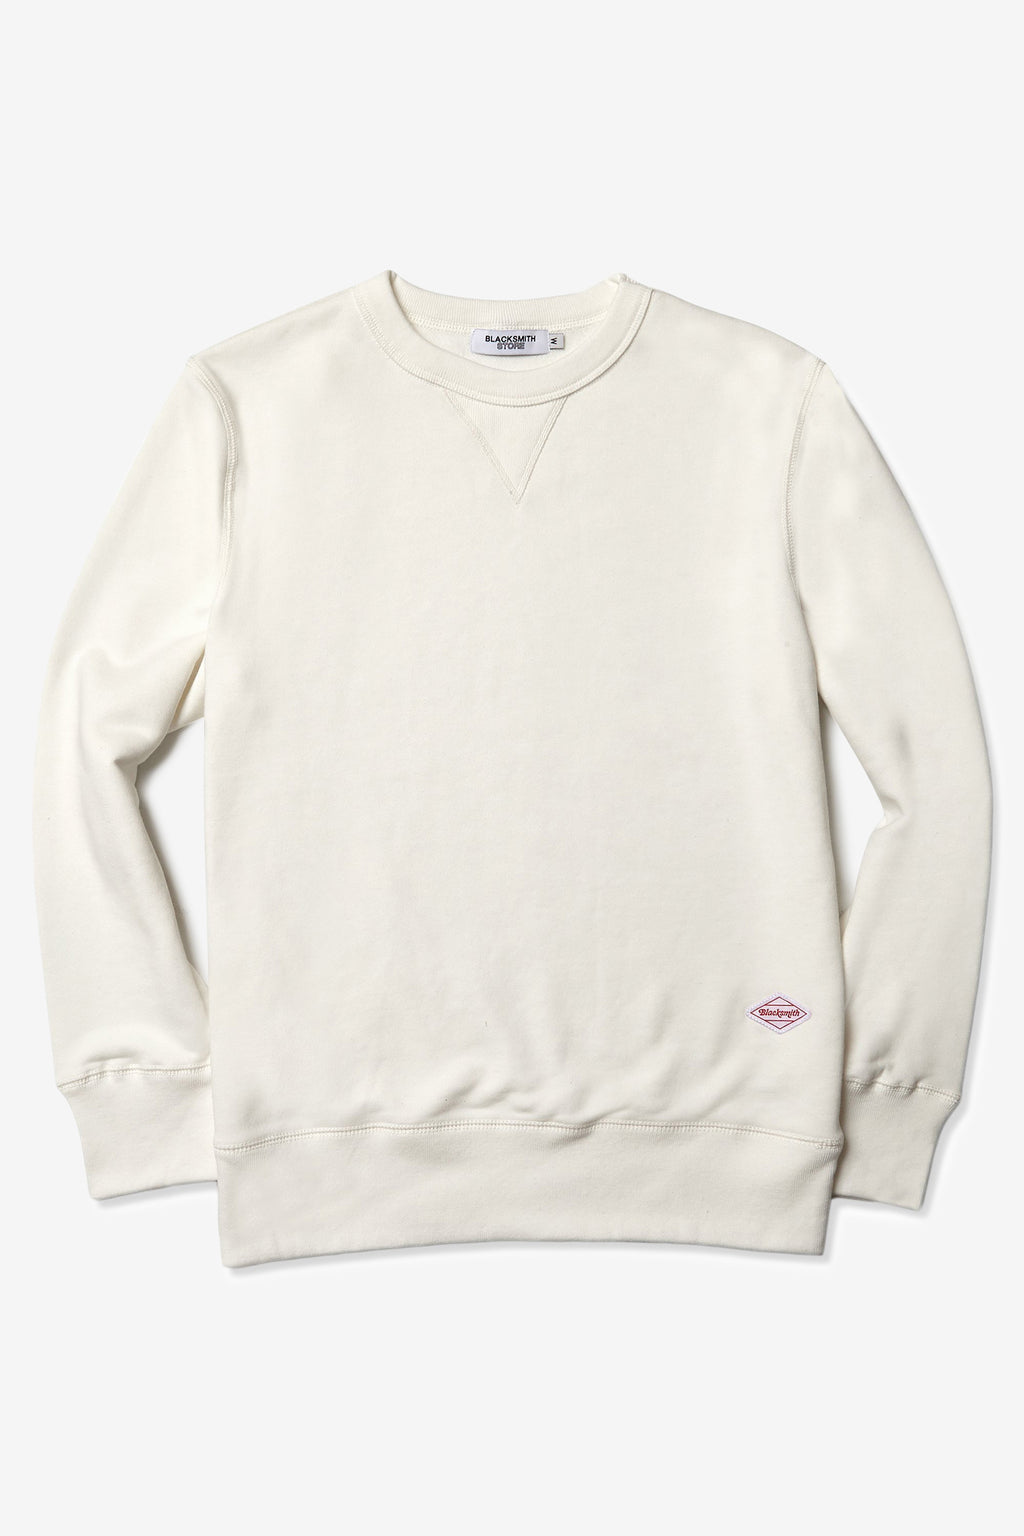 Blacksmith - Loopback Everyday Crewneck - Ivory